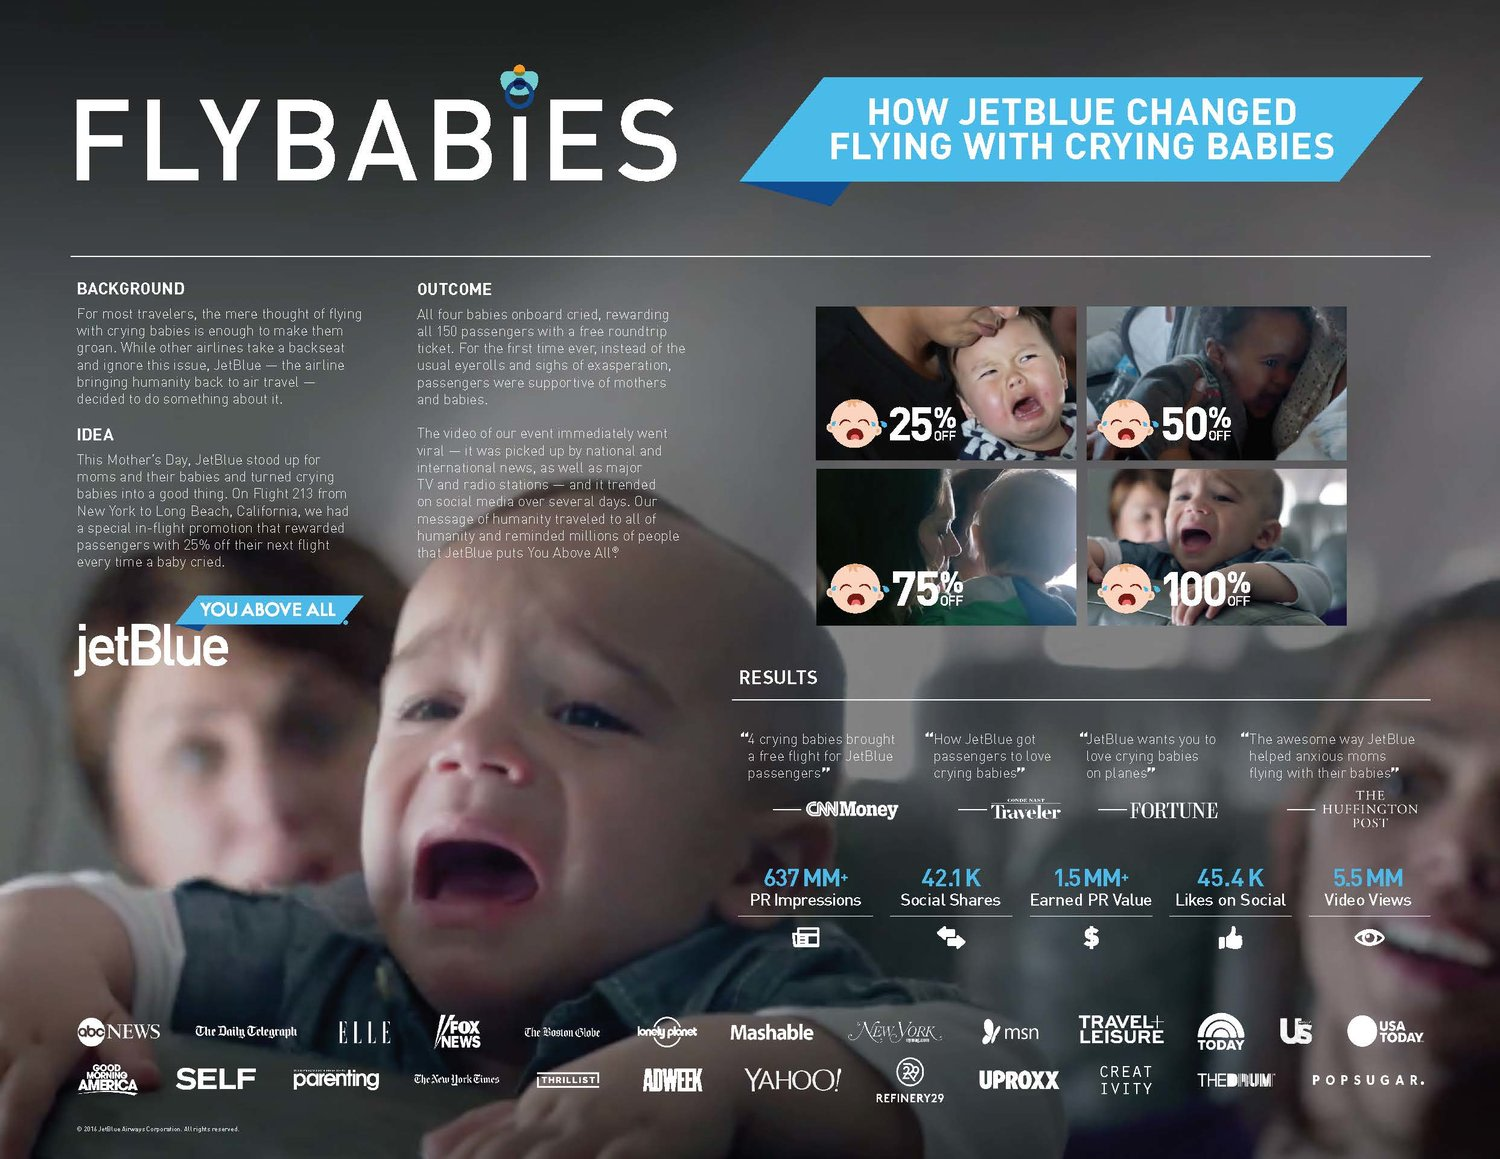 Flybabies by JetBlue